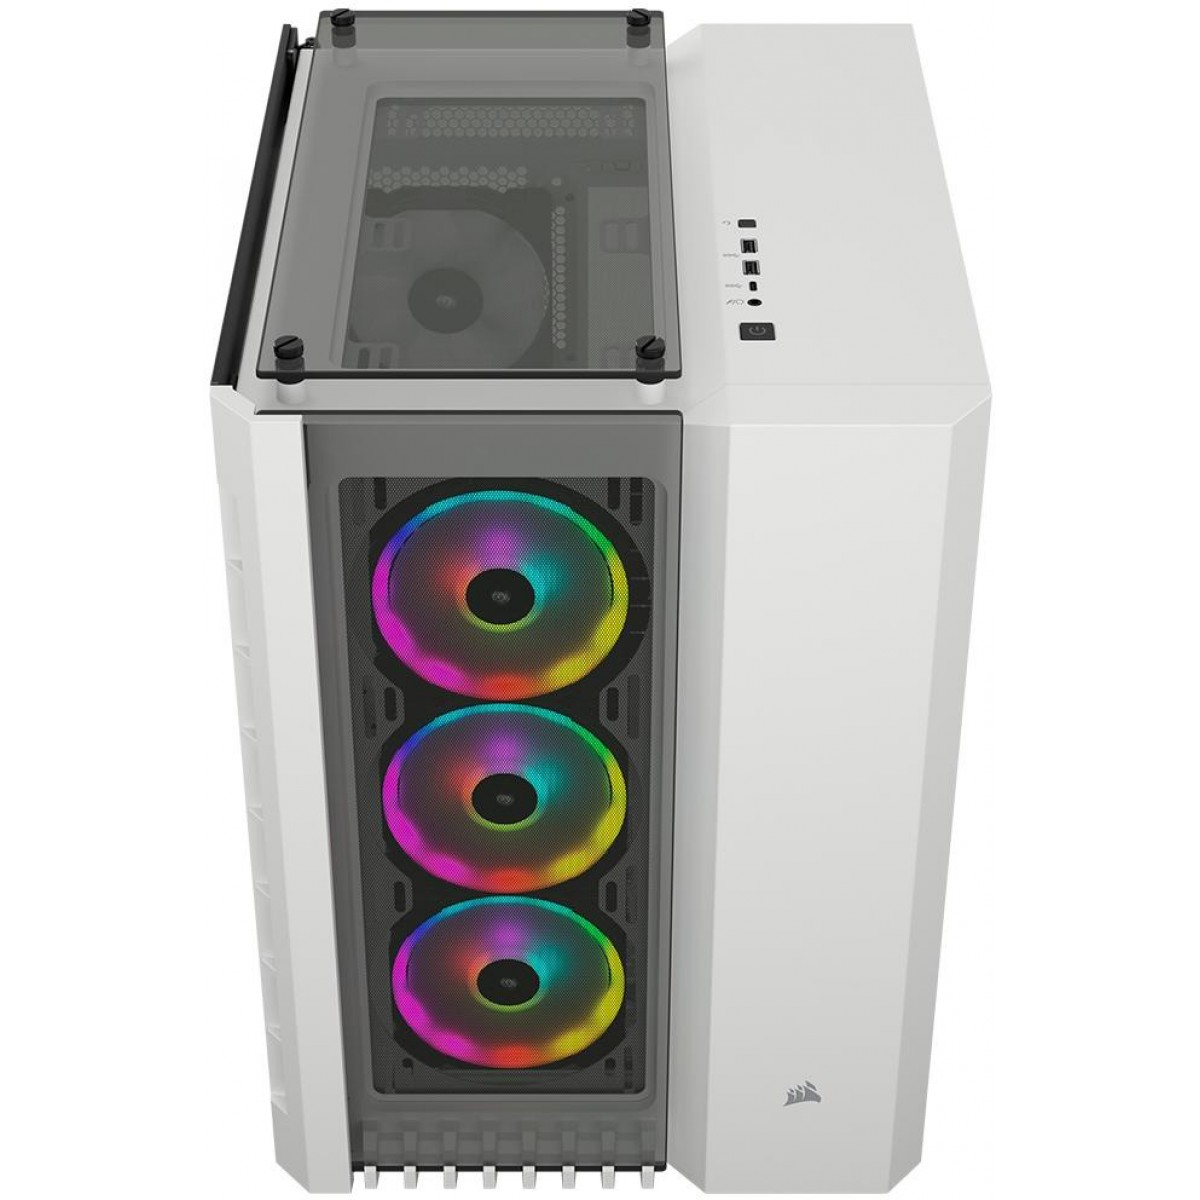 Gabinete Gamer Corsair Crystal 680x RGB, Full Tower, Vidro Temperado, 4 Fans, White, S-Fonte, CC-9011169-WW